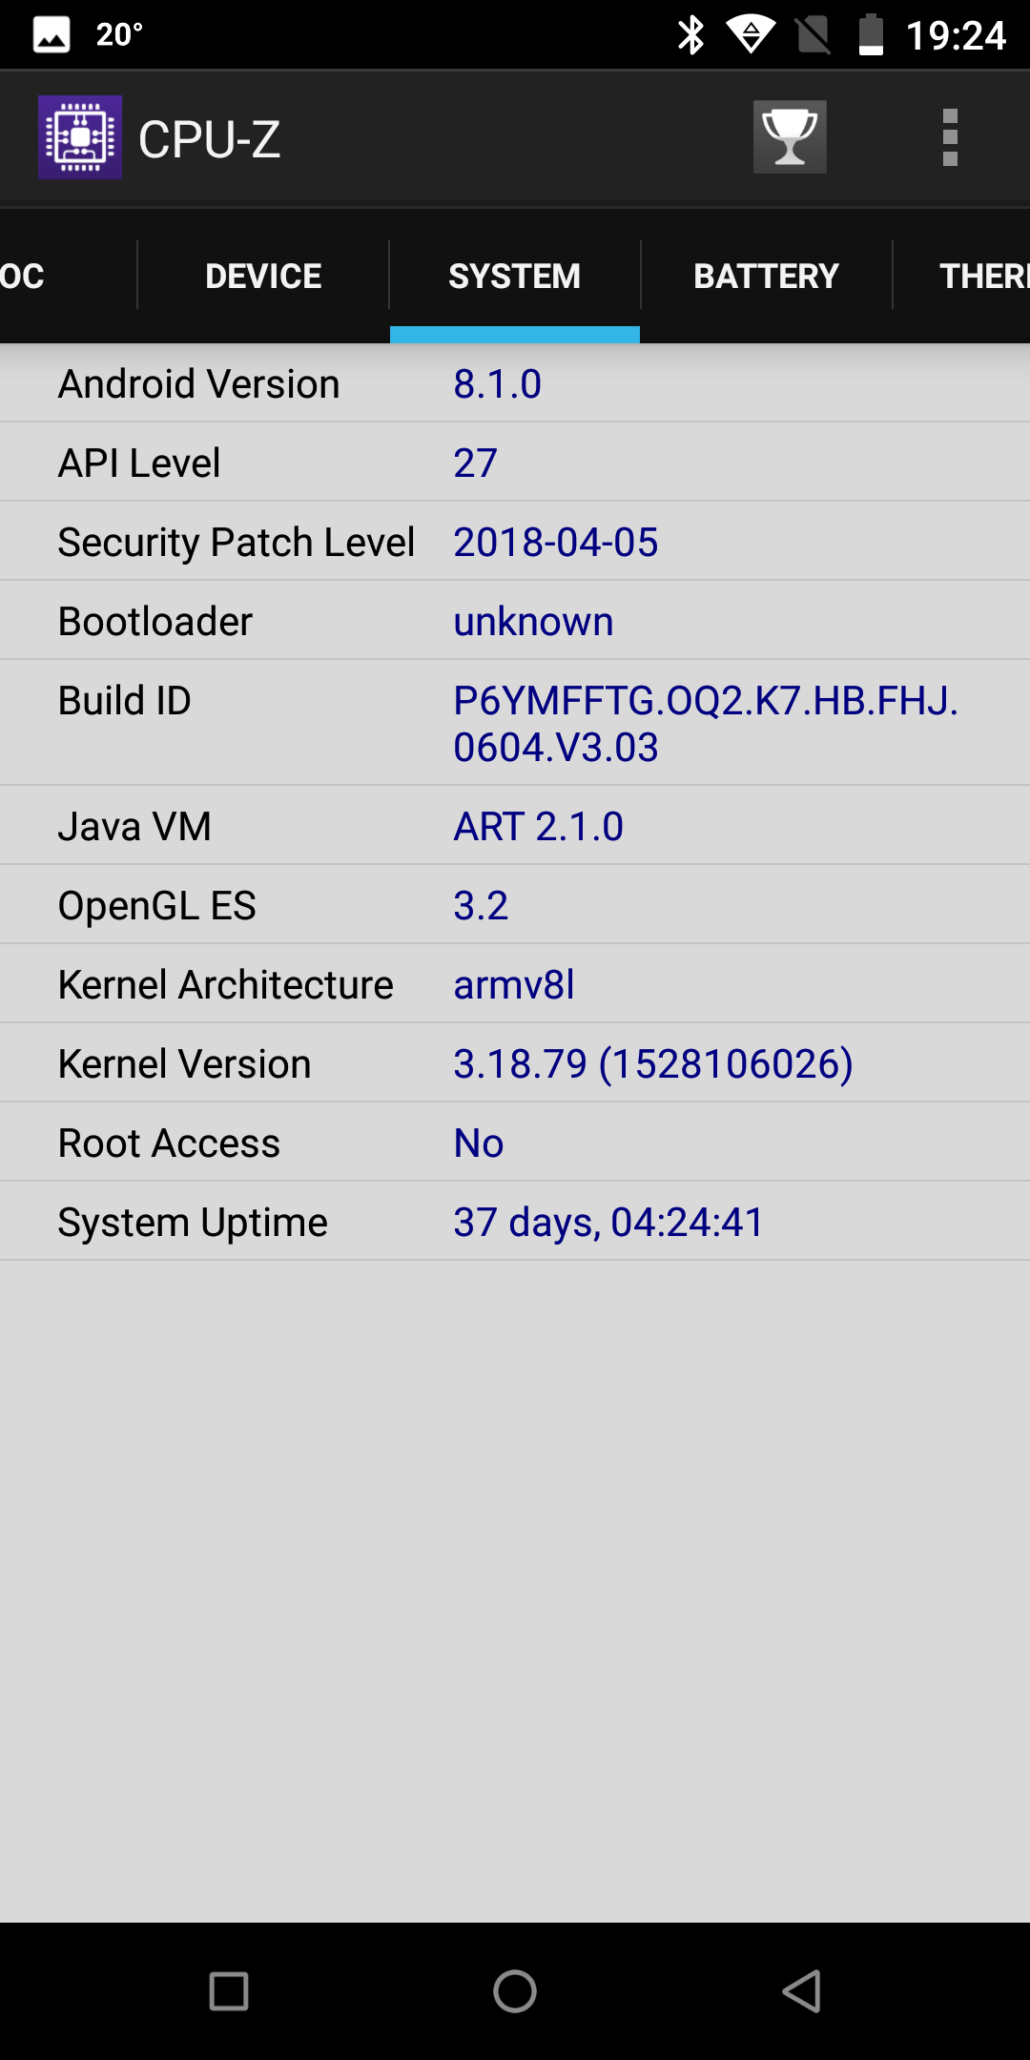 oukitel-k7-phone-review-02-part-3-cpuz-system